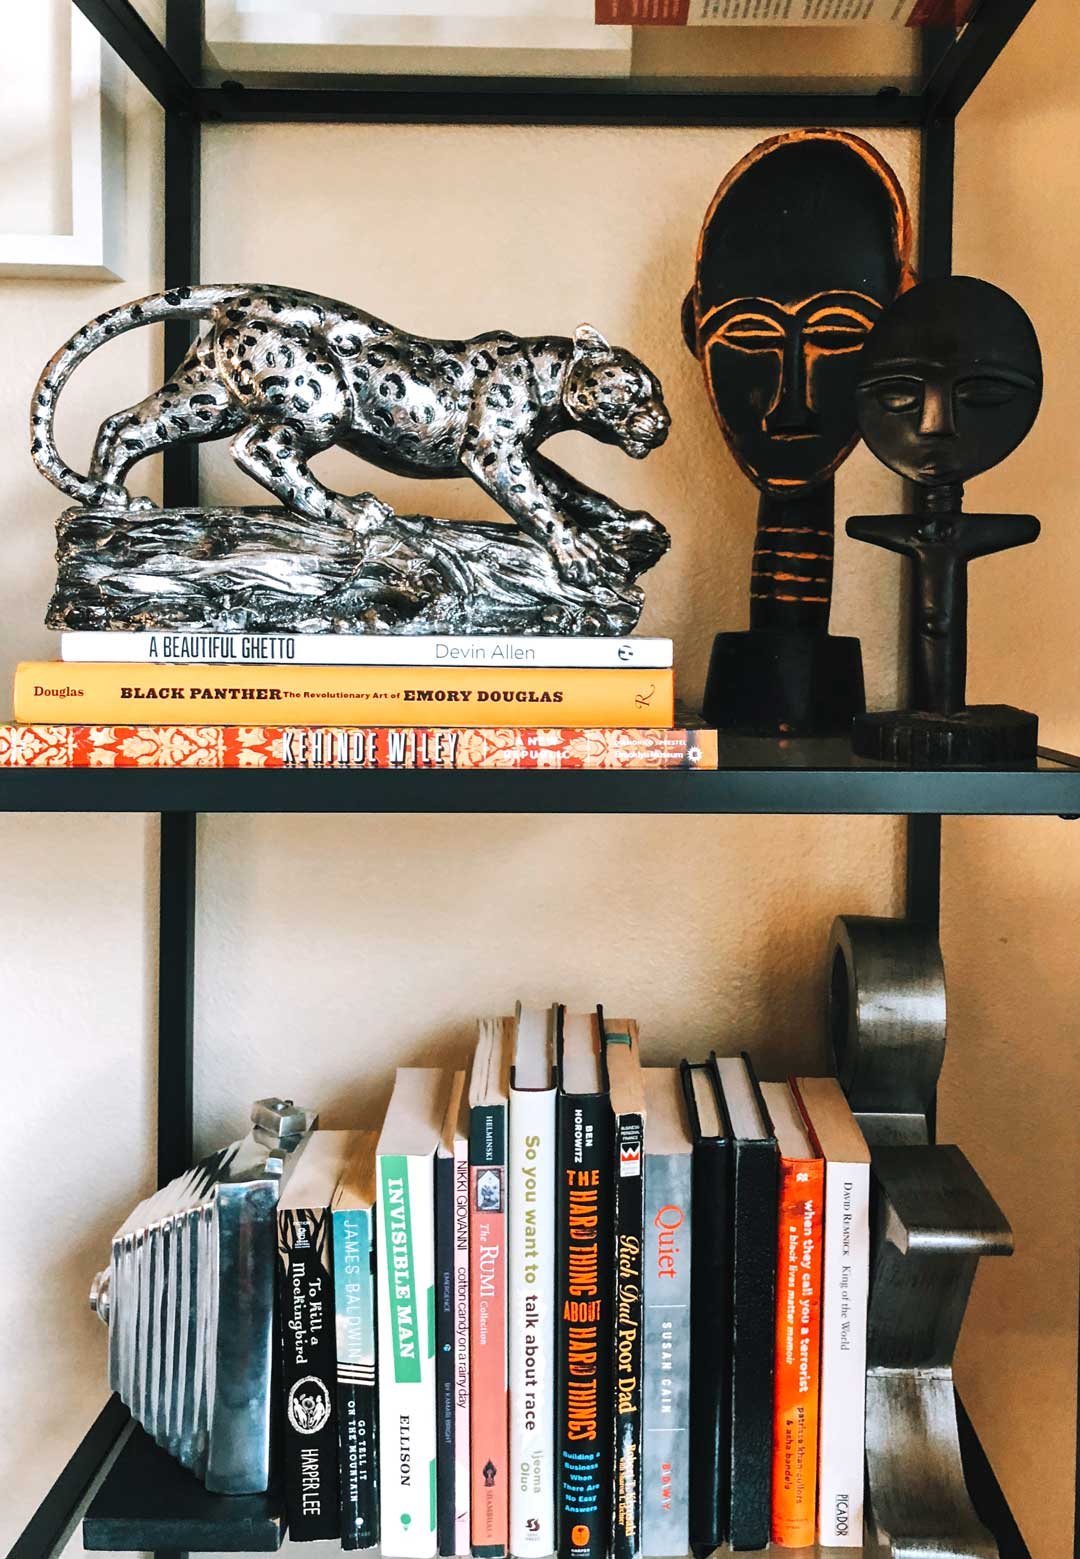 Gold chrome vase, cougar statue & bookends: Ross. African statues: Goodwill.